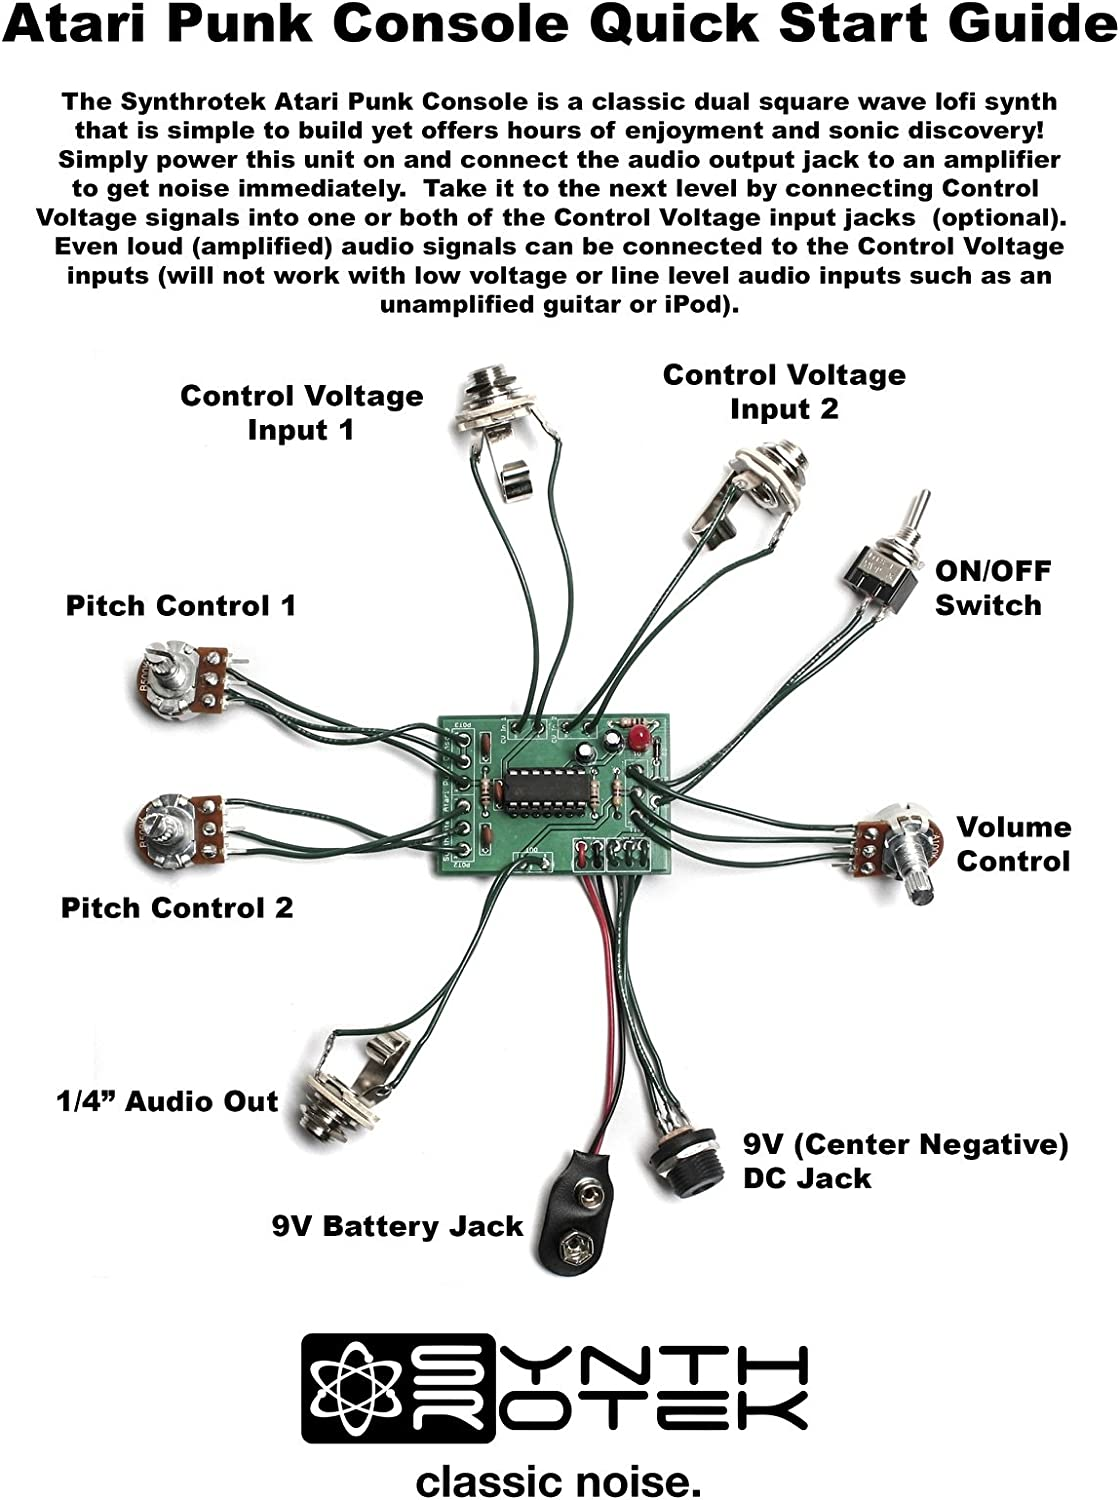 Synthrotek Atari Punk Console Kit Video Games Learn To Build The Electronic Circuits